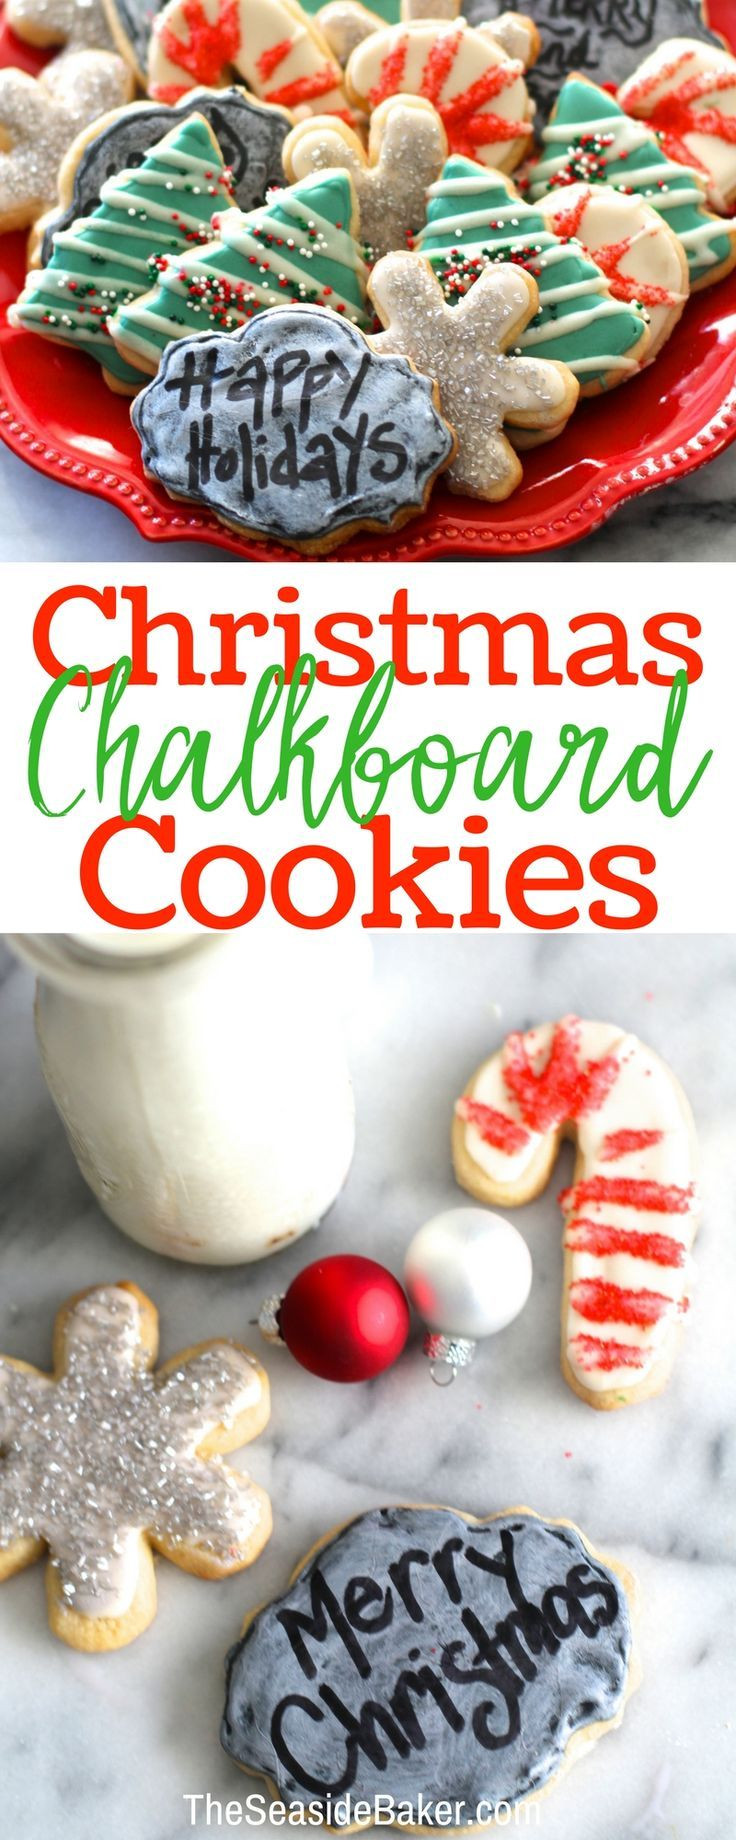 Send Christmas Cookies  1878 best Easy Christmas Cookie Recipes images on